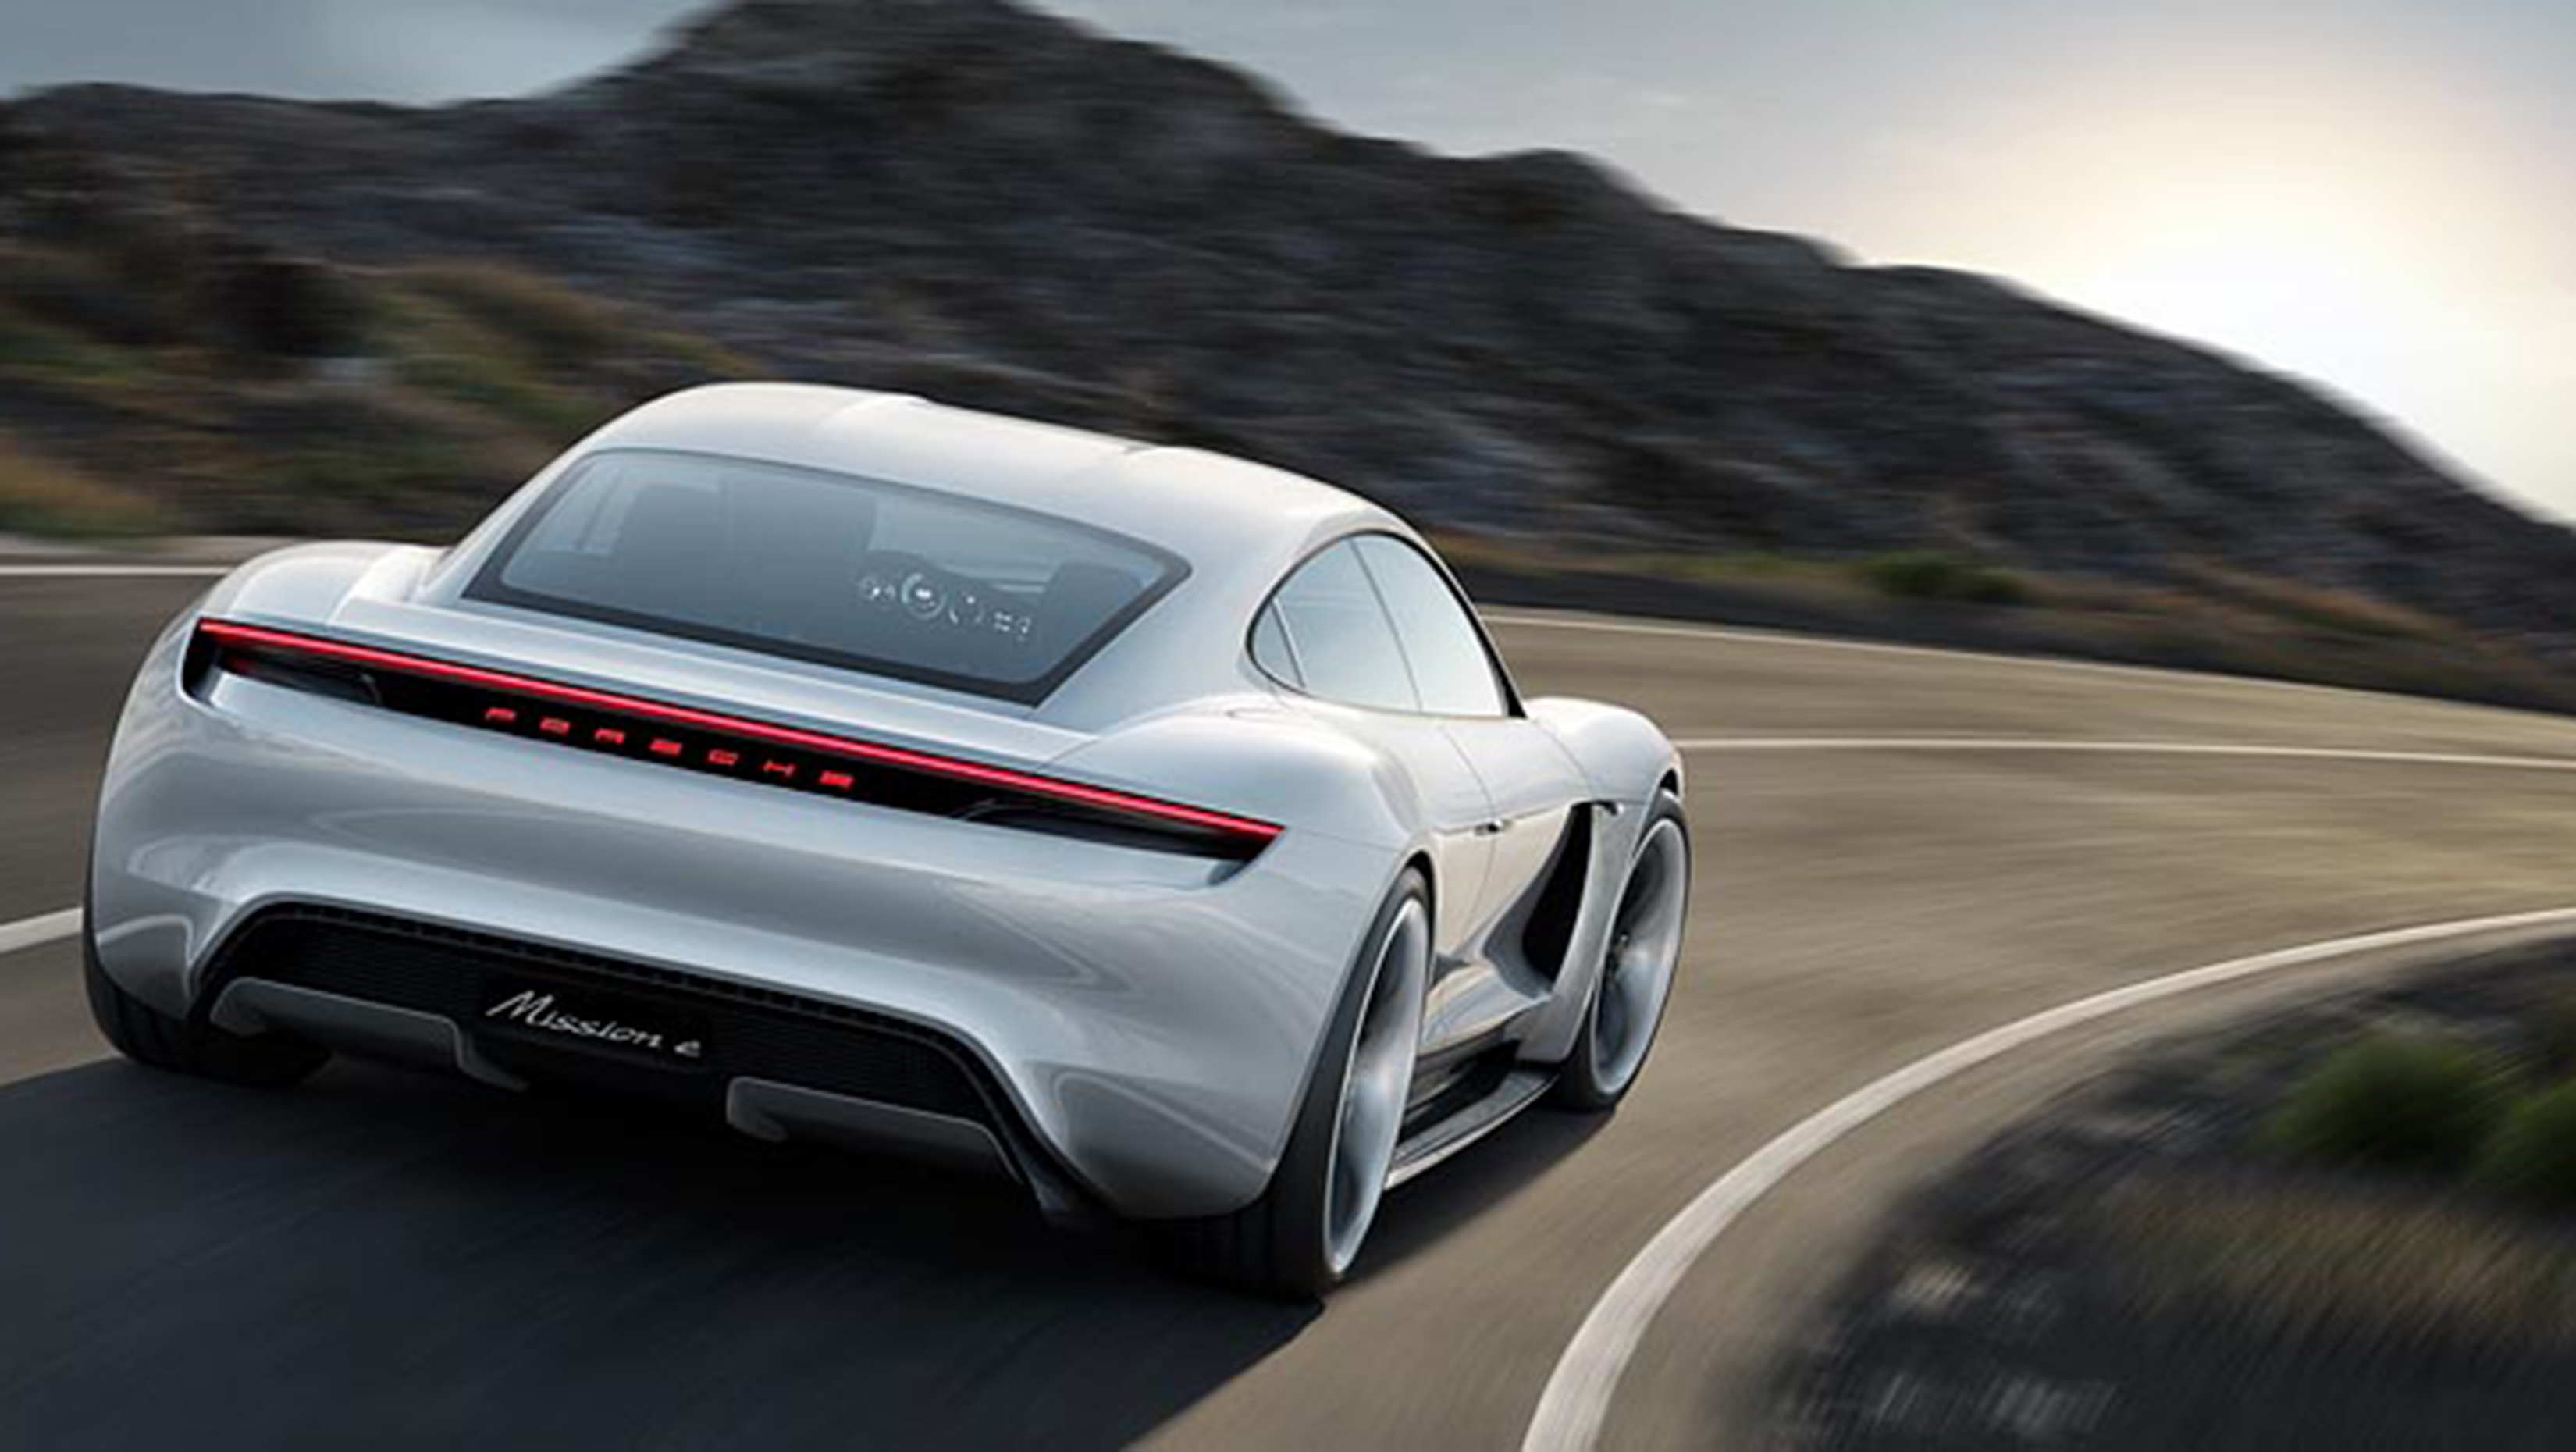 Porsche will produce Mission E concept car. The Mission E is expected to go on sale at the end of 2019